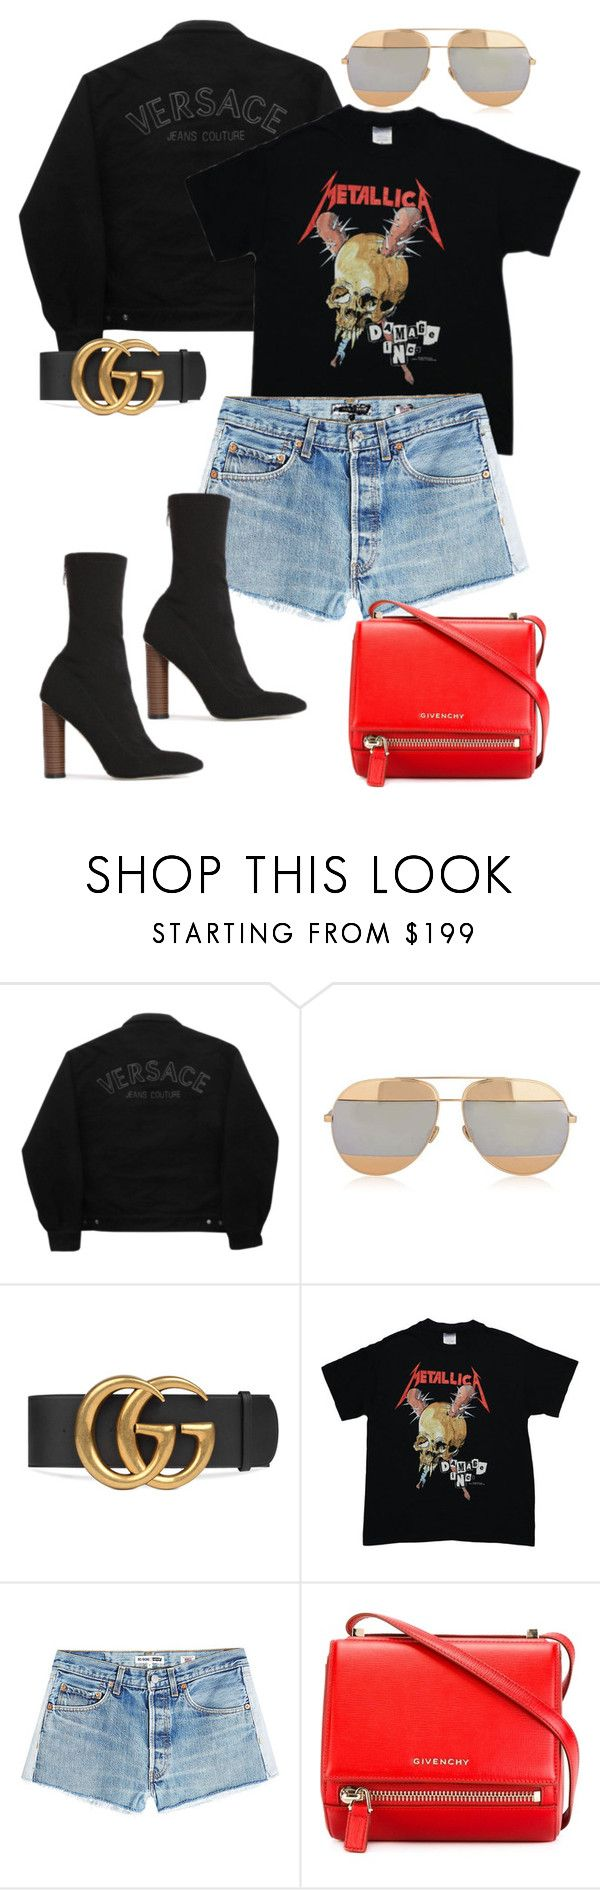 """""""Untitled"""" by whoiselle ❤ liked on Polyvore featuring Versace Jeans Couture, Christian Dior, Gucci, INC International Concepts, RE/DONE, Givenchy and Public Desire"""